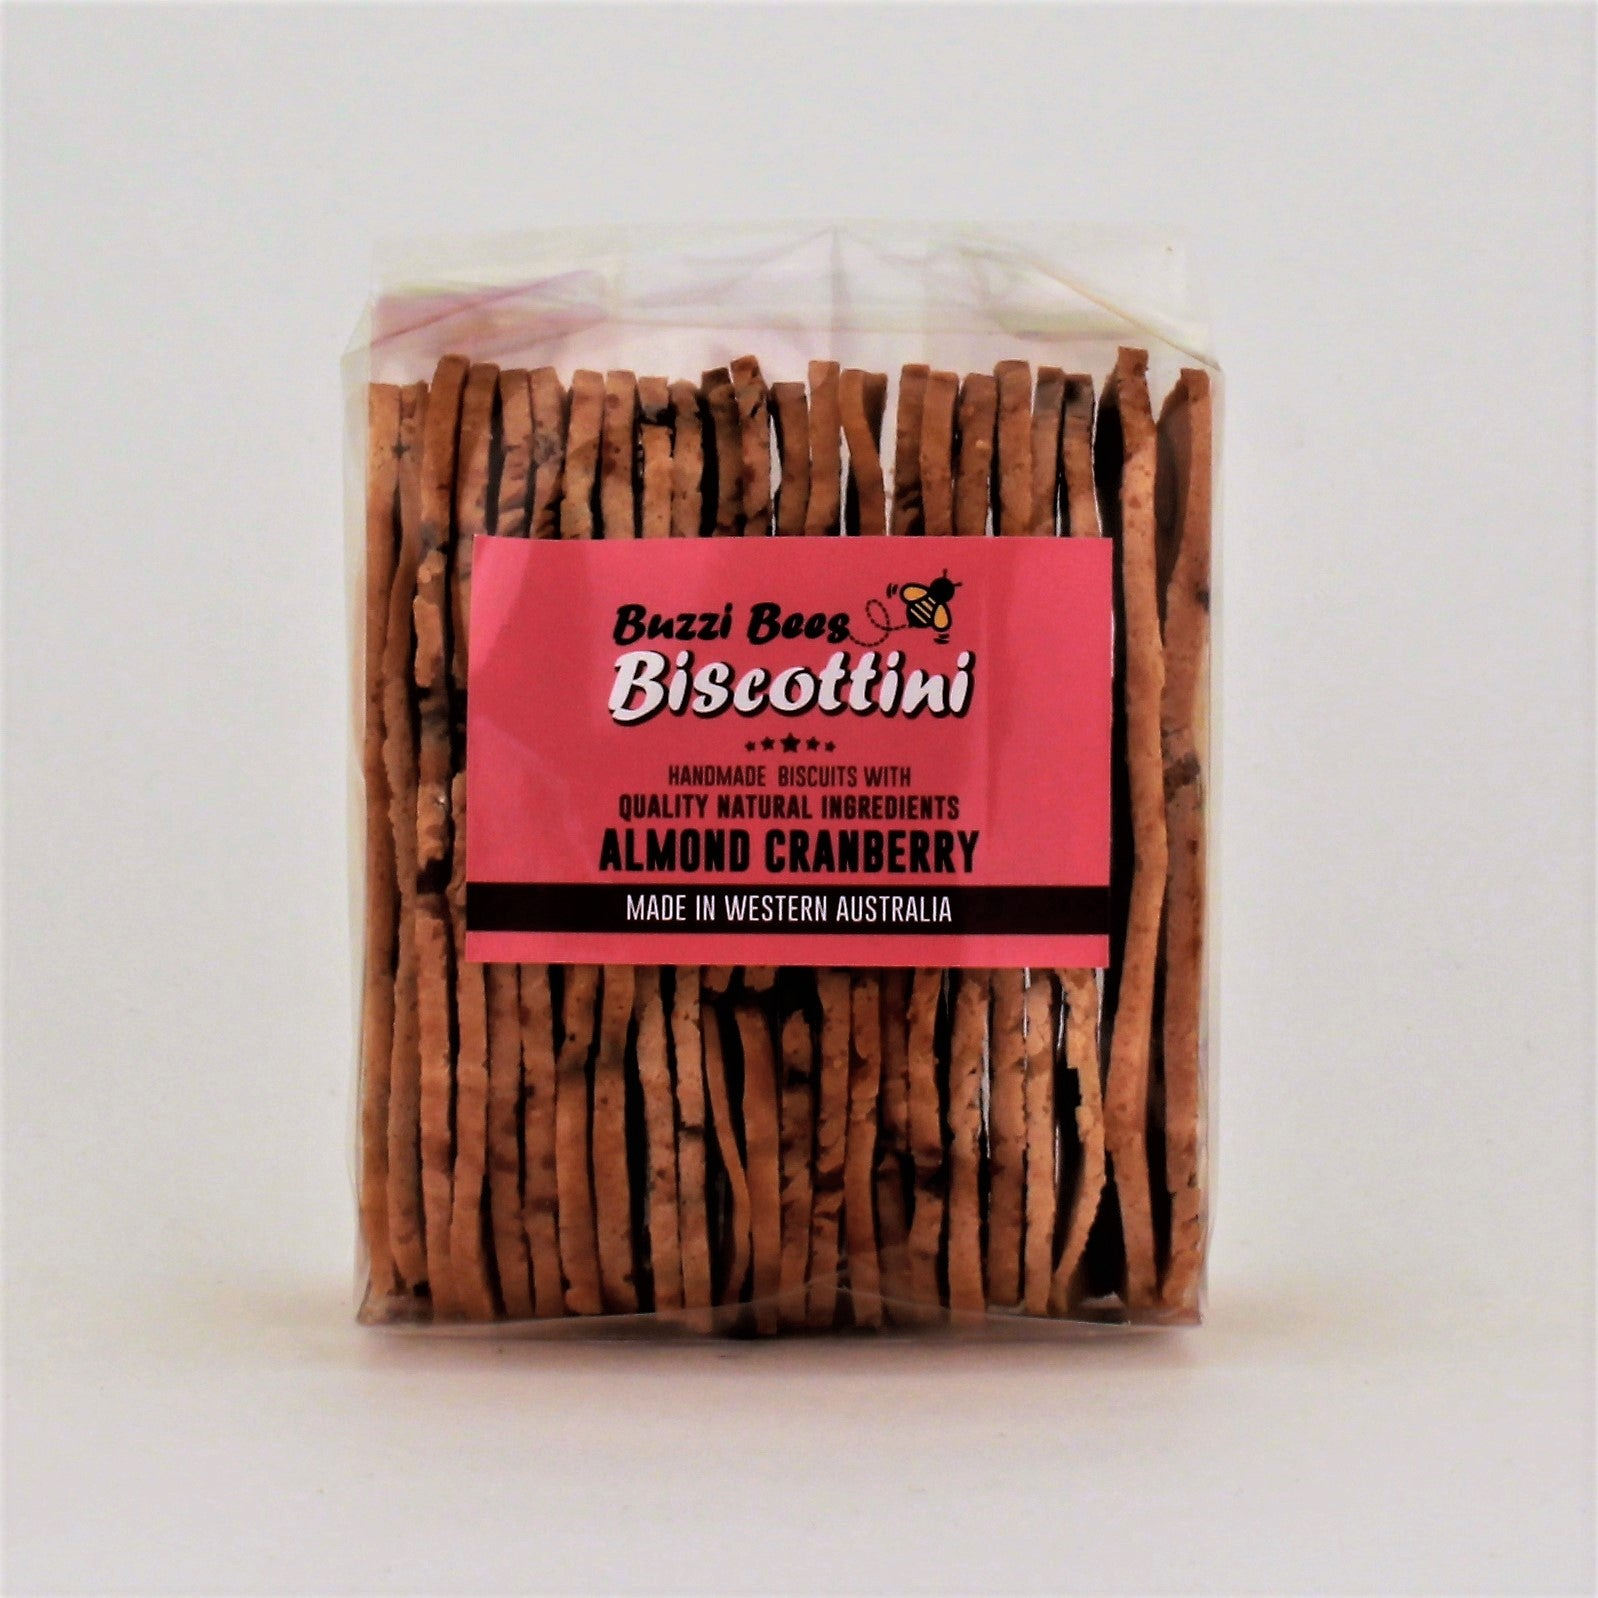 Buzzi Bees Biscottini Almond and Cranberry 150g